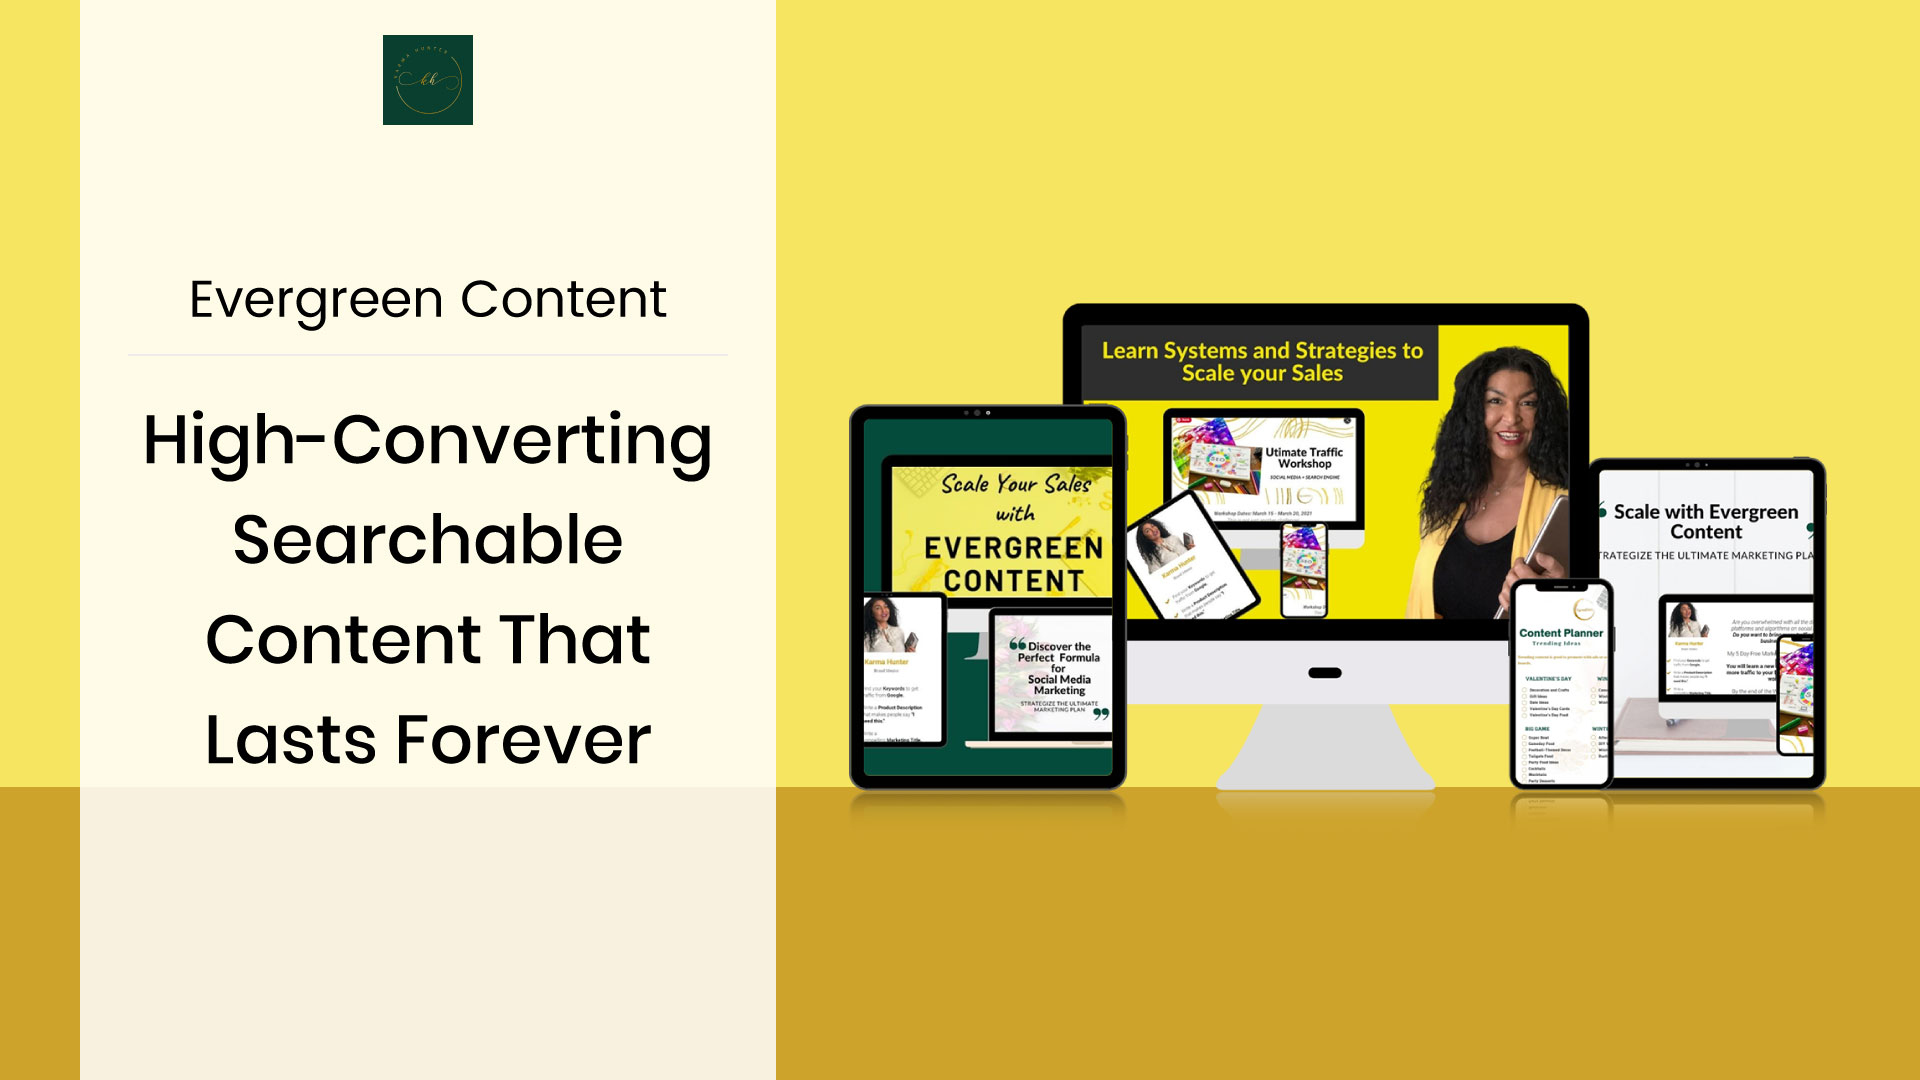 High-Converting Searchable Content That Lasts Forever